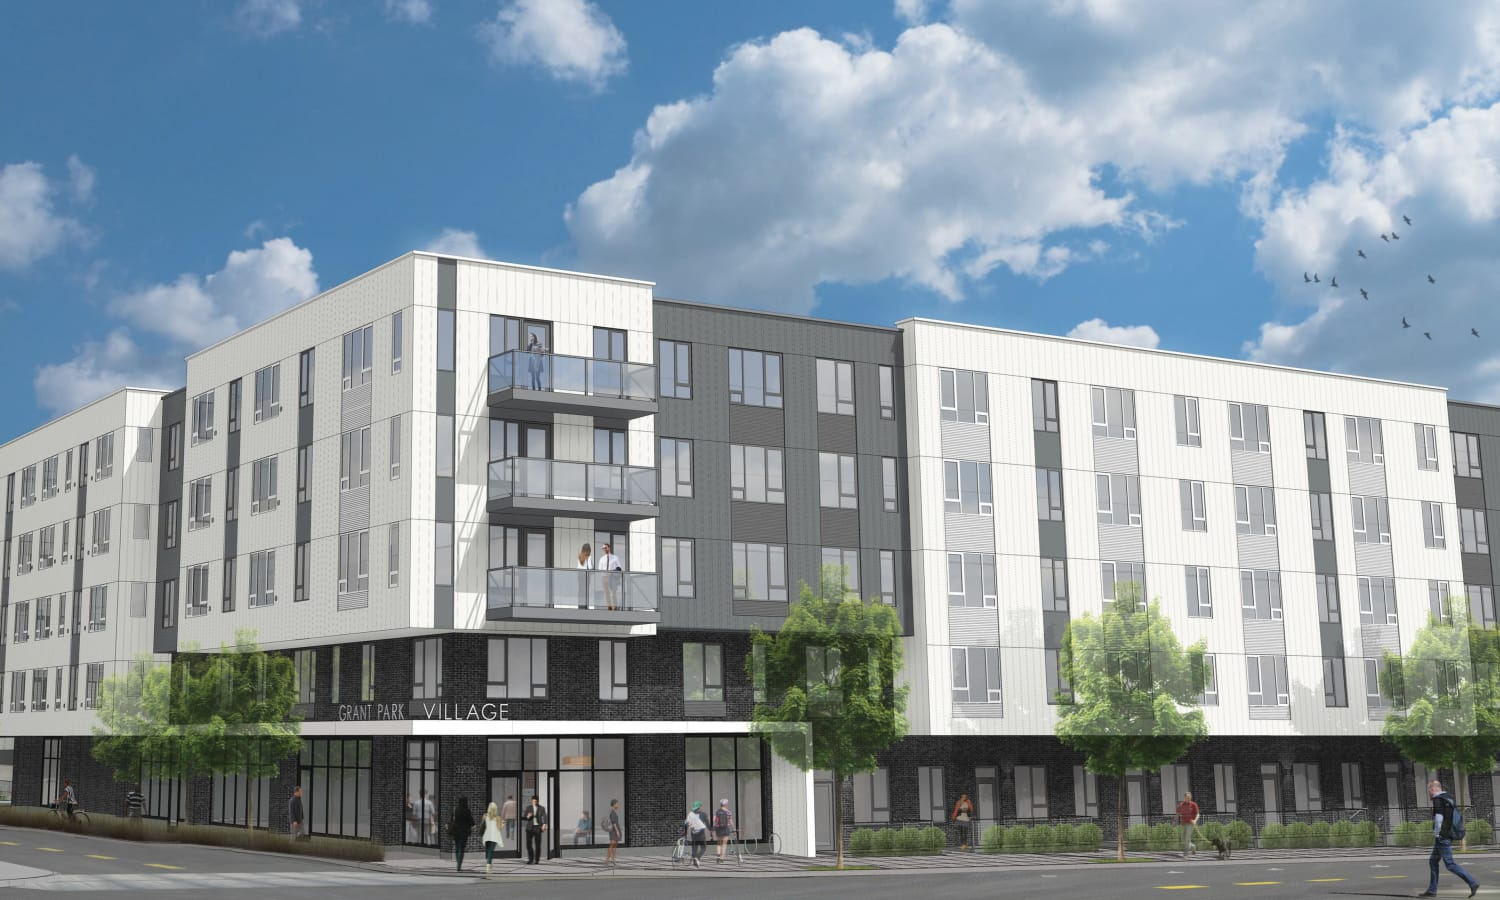 Exterior rendering of street view at Grant Park Village - Quimby from NE 32nd in Portland, OR